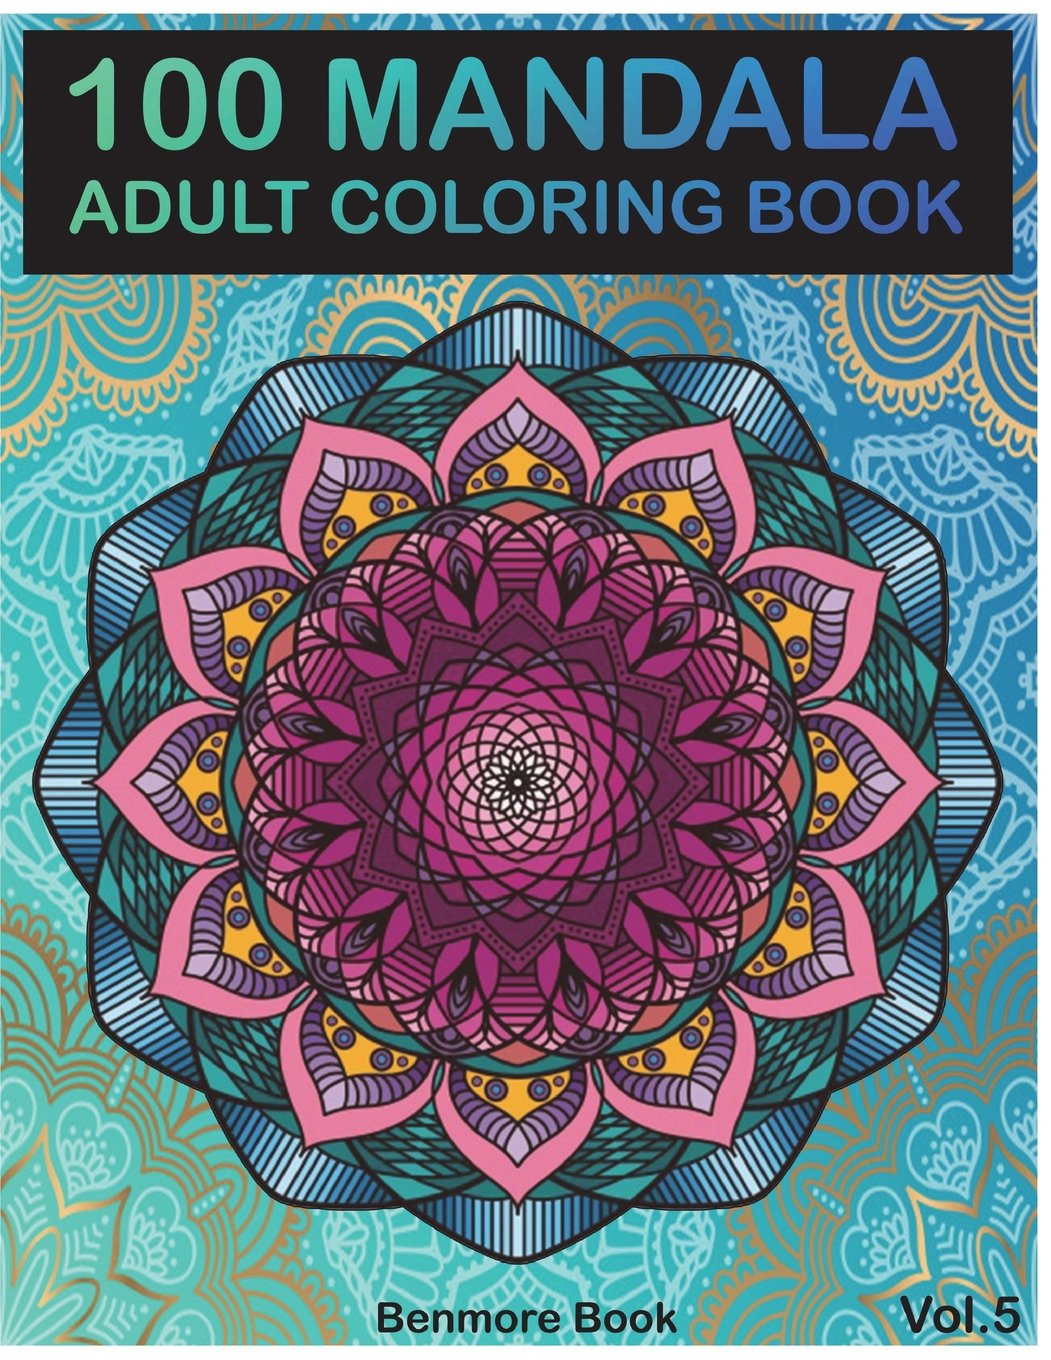 100 Mandala: Adult Coloring Book 100 Mandala Images Stress Management Coloring Book For Relaxation, Meditation, Happiness and Relief & Art Color Therapy(Volume 5) pdf